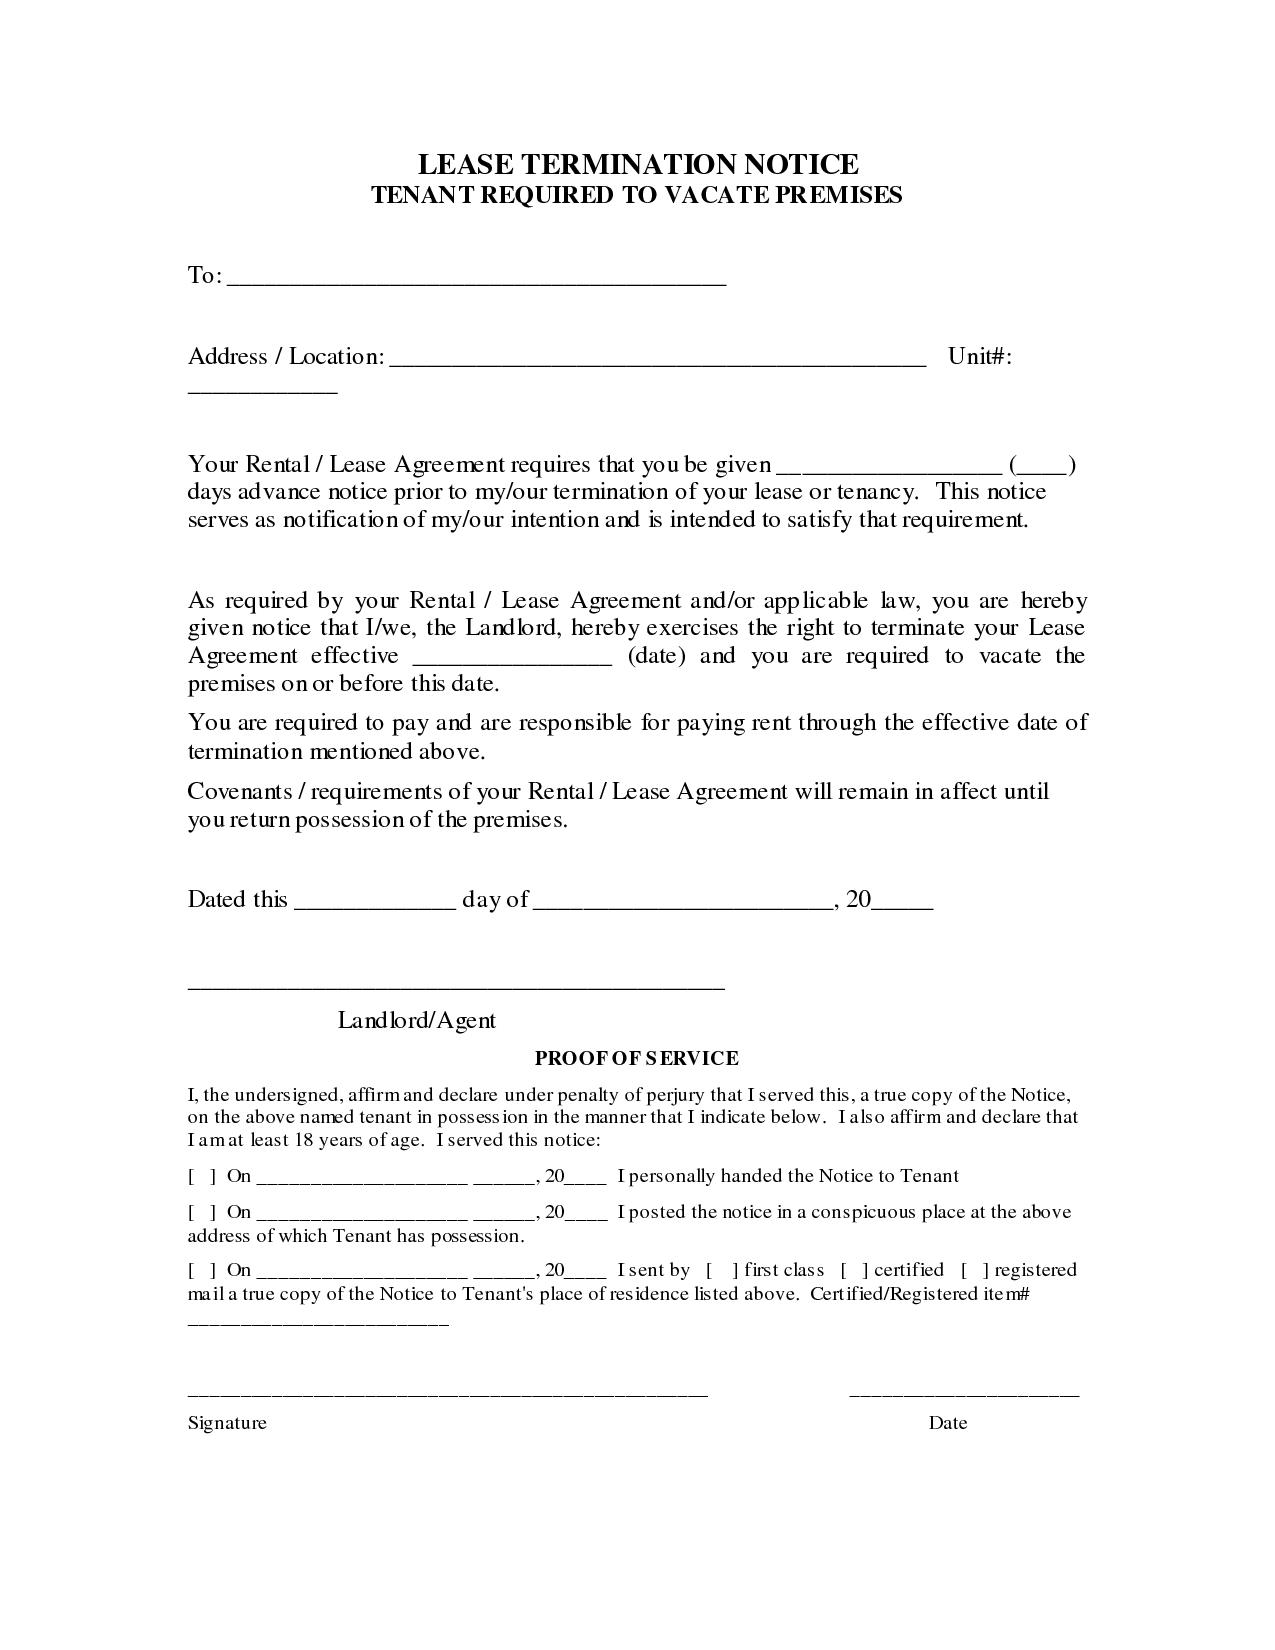 termination of lease letter to tenant rental agreement termination letter sample lease from landlord ...